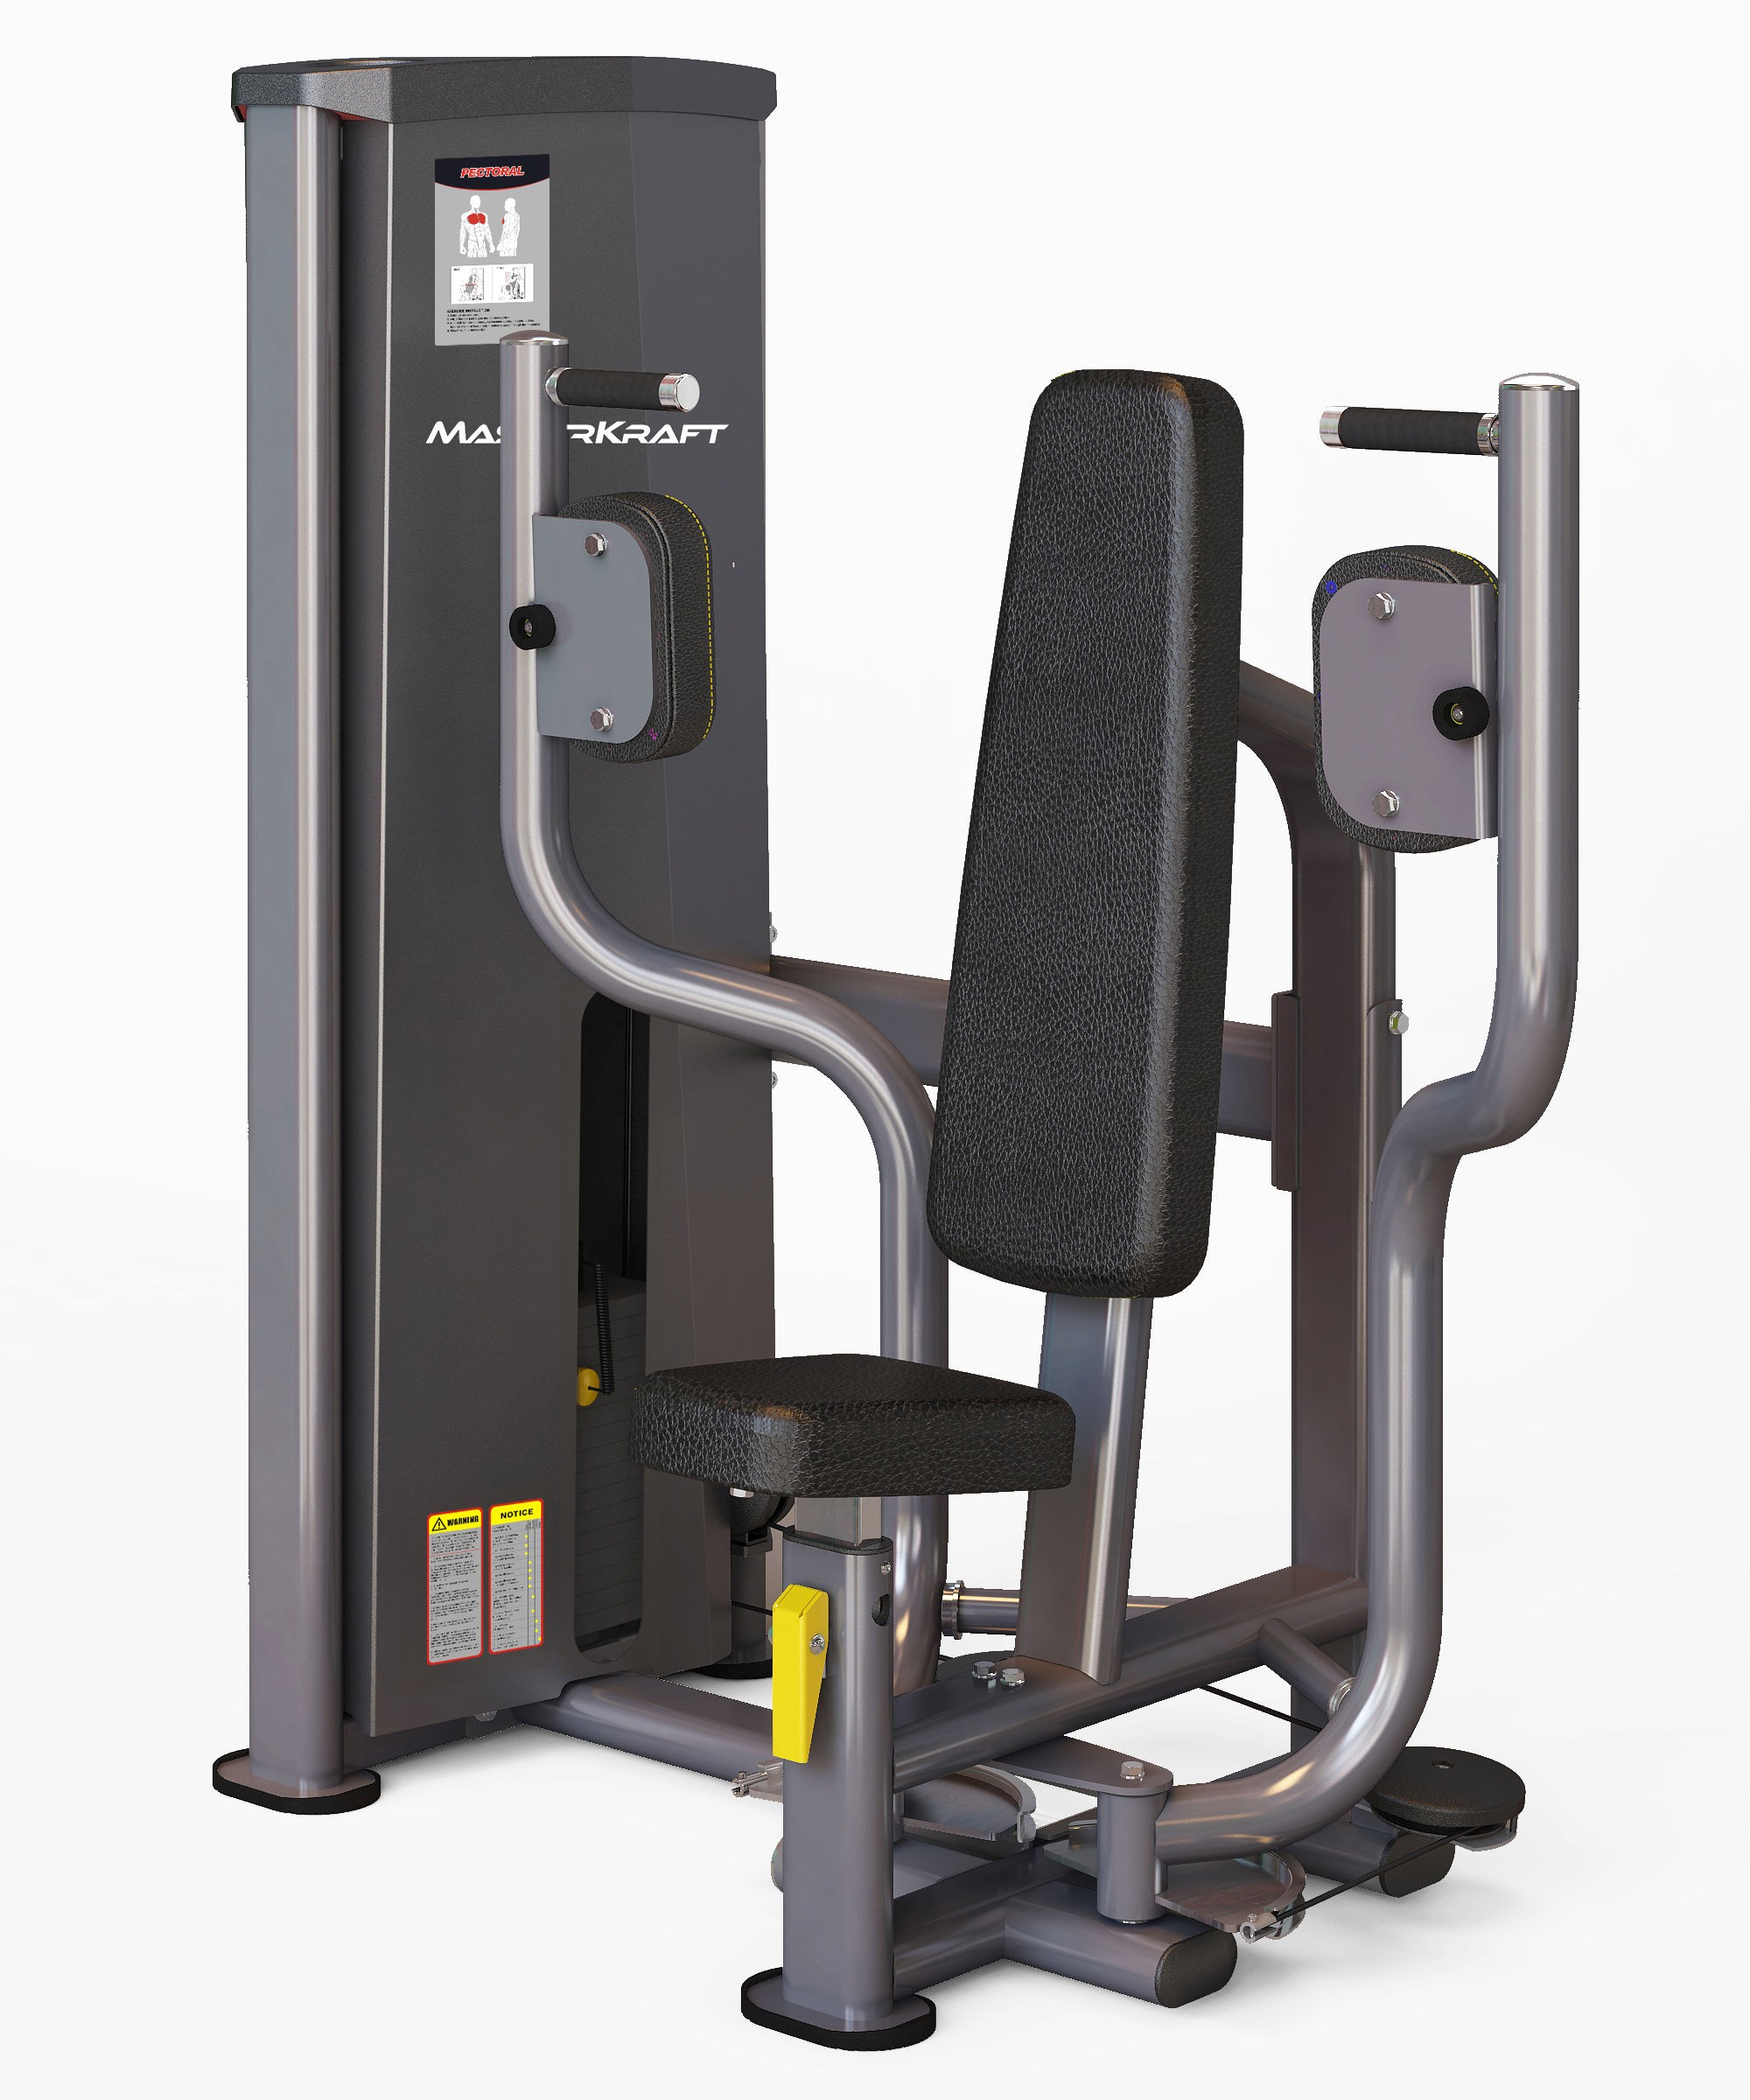 MasterKraft Advanced Pectoral Machine